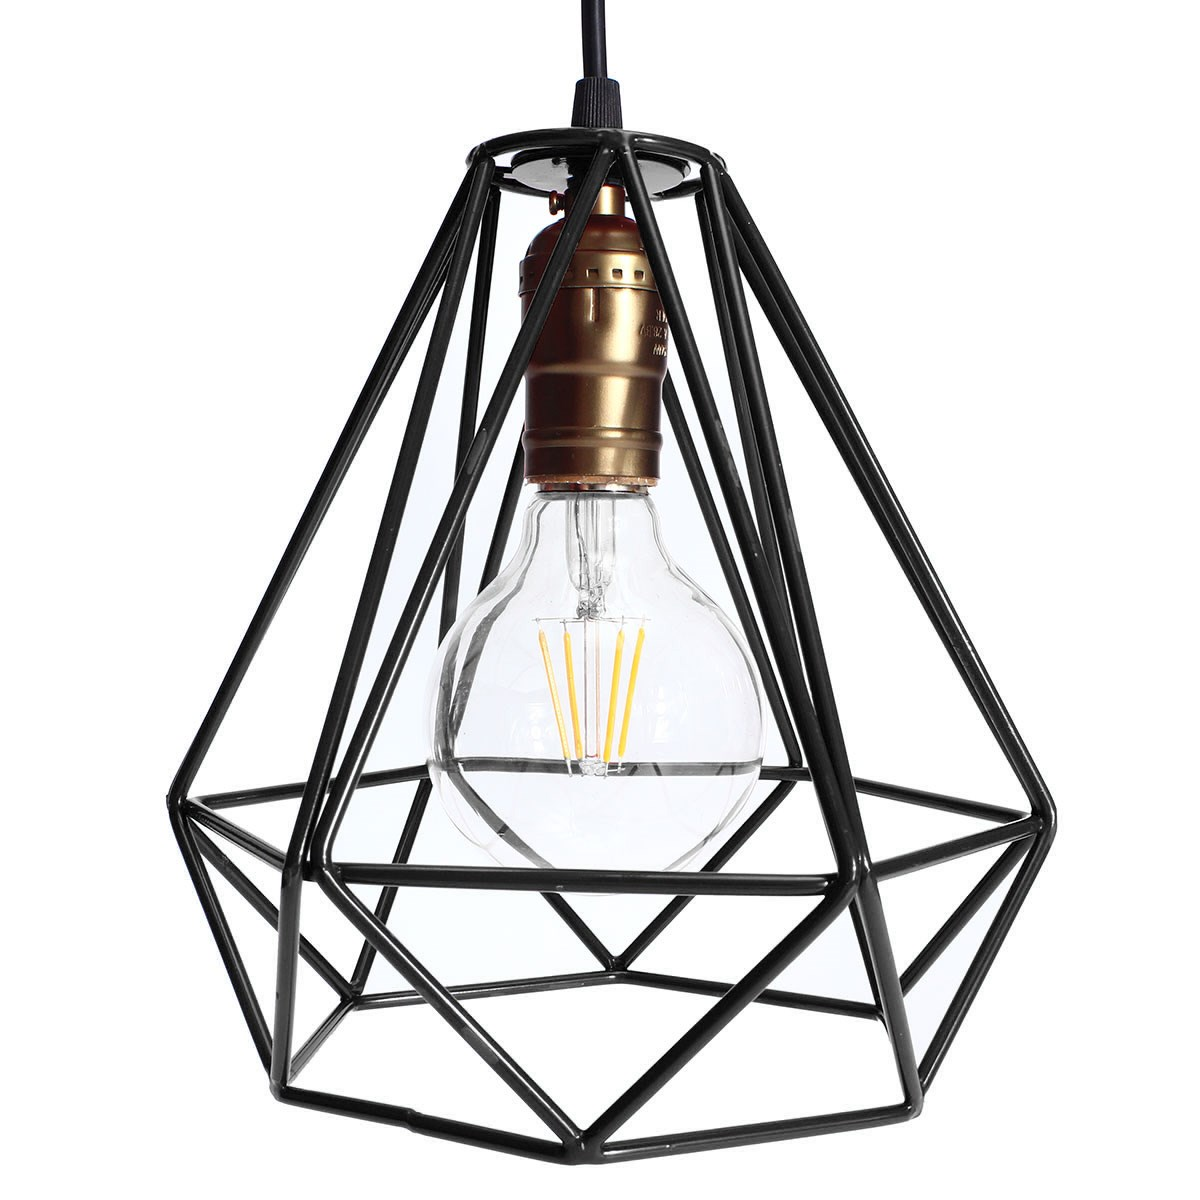 medium resolution of lampshade modern lamp cover loft industrial edison metal wire frame ceiling pendant hanging light lamp cage fixture in lamp covers shades from lights